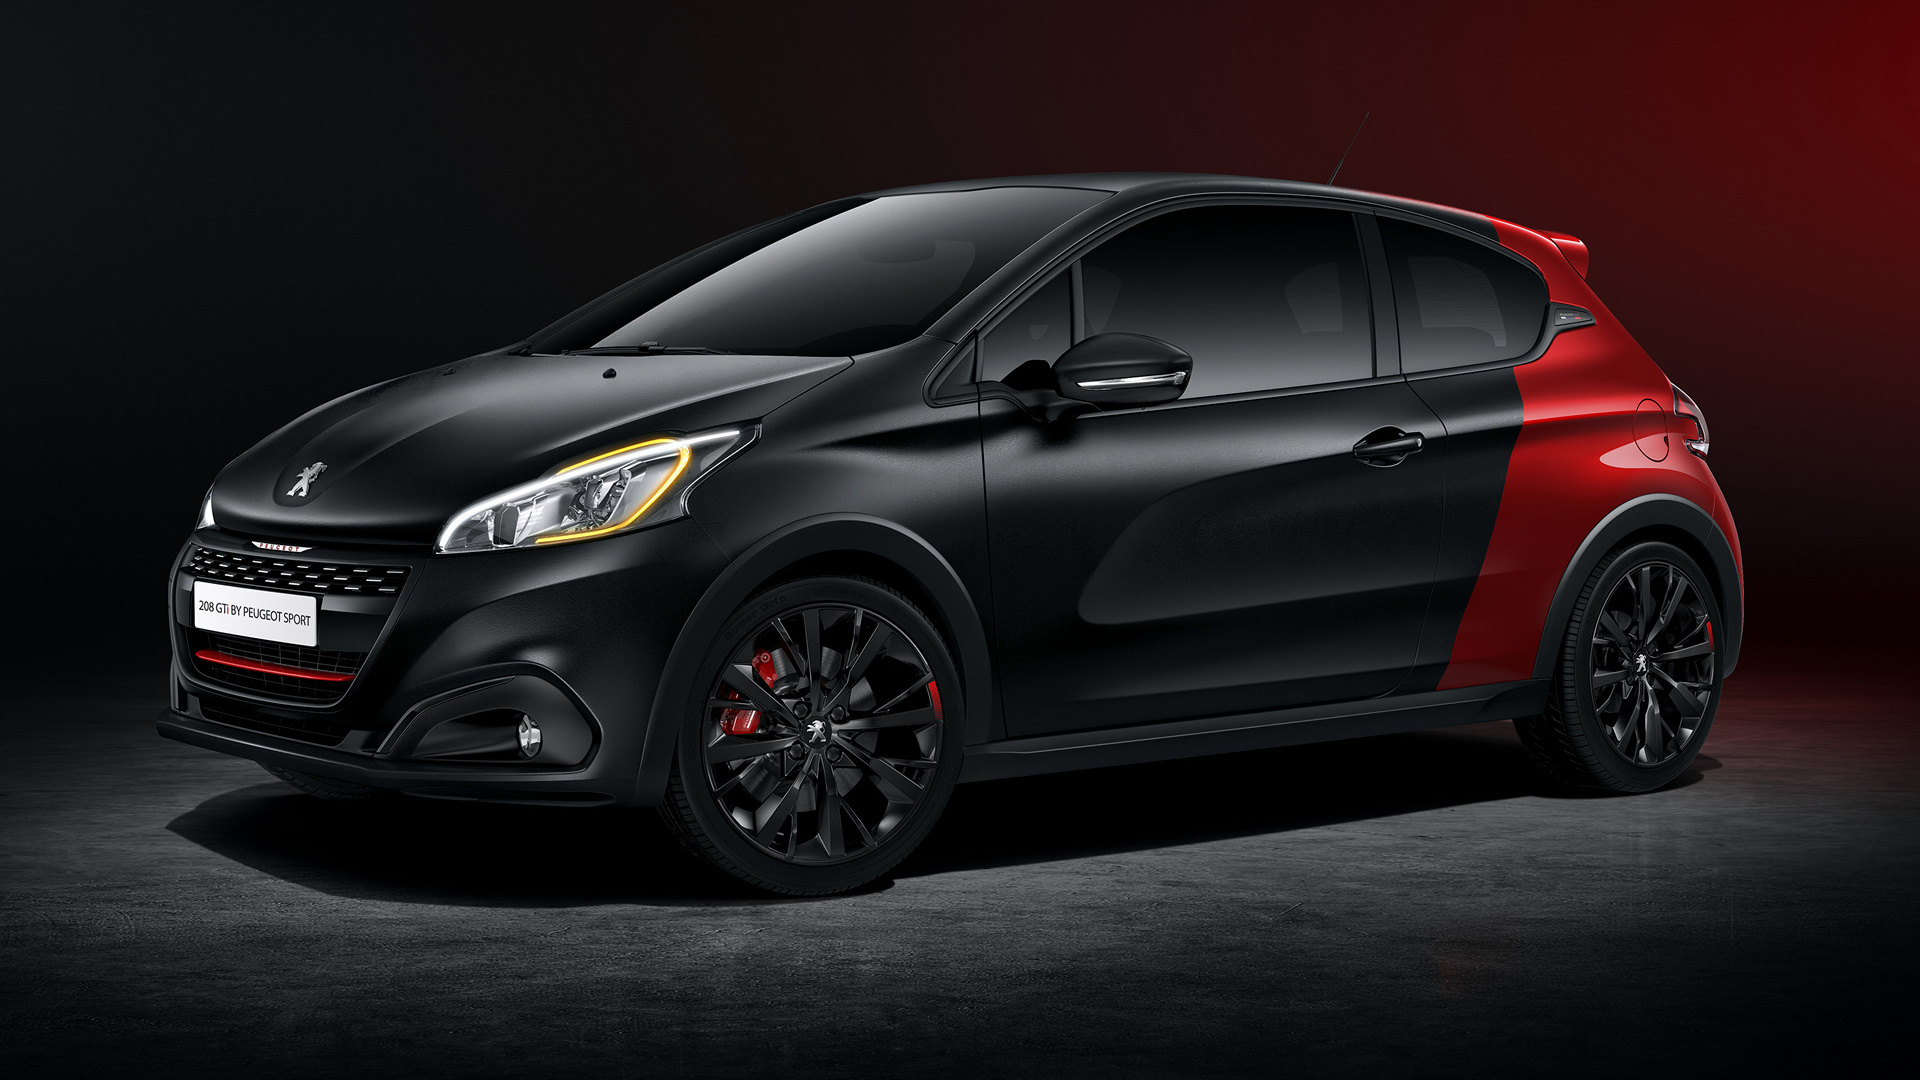 ... 208 GTi by Peugeot Sport (2015) Wallpapers and HD Images - Car Pixel